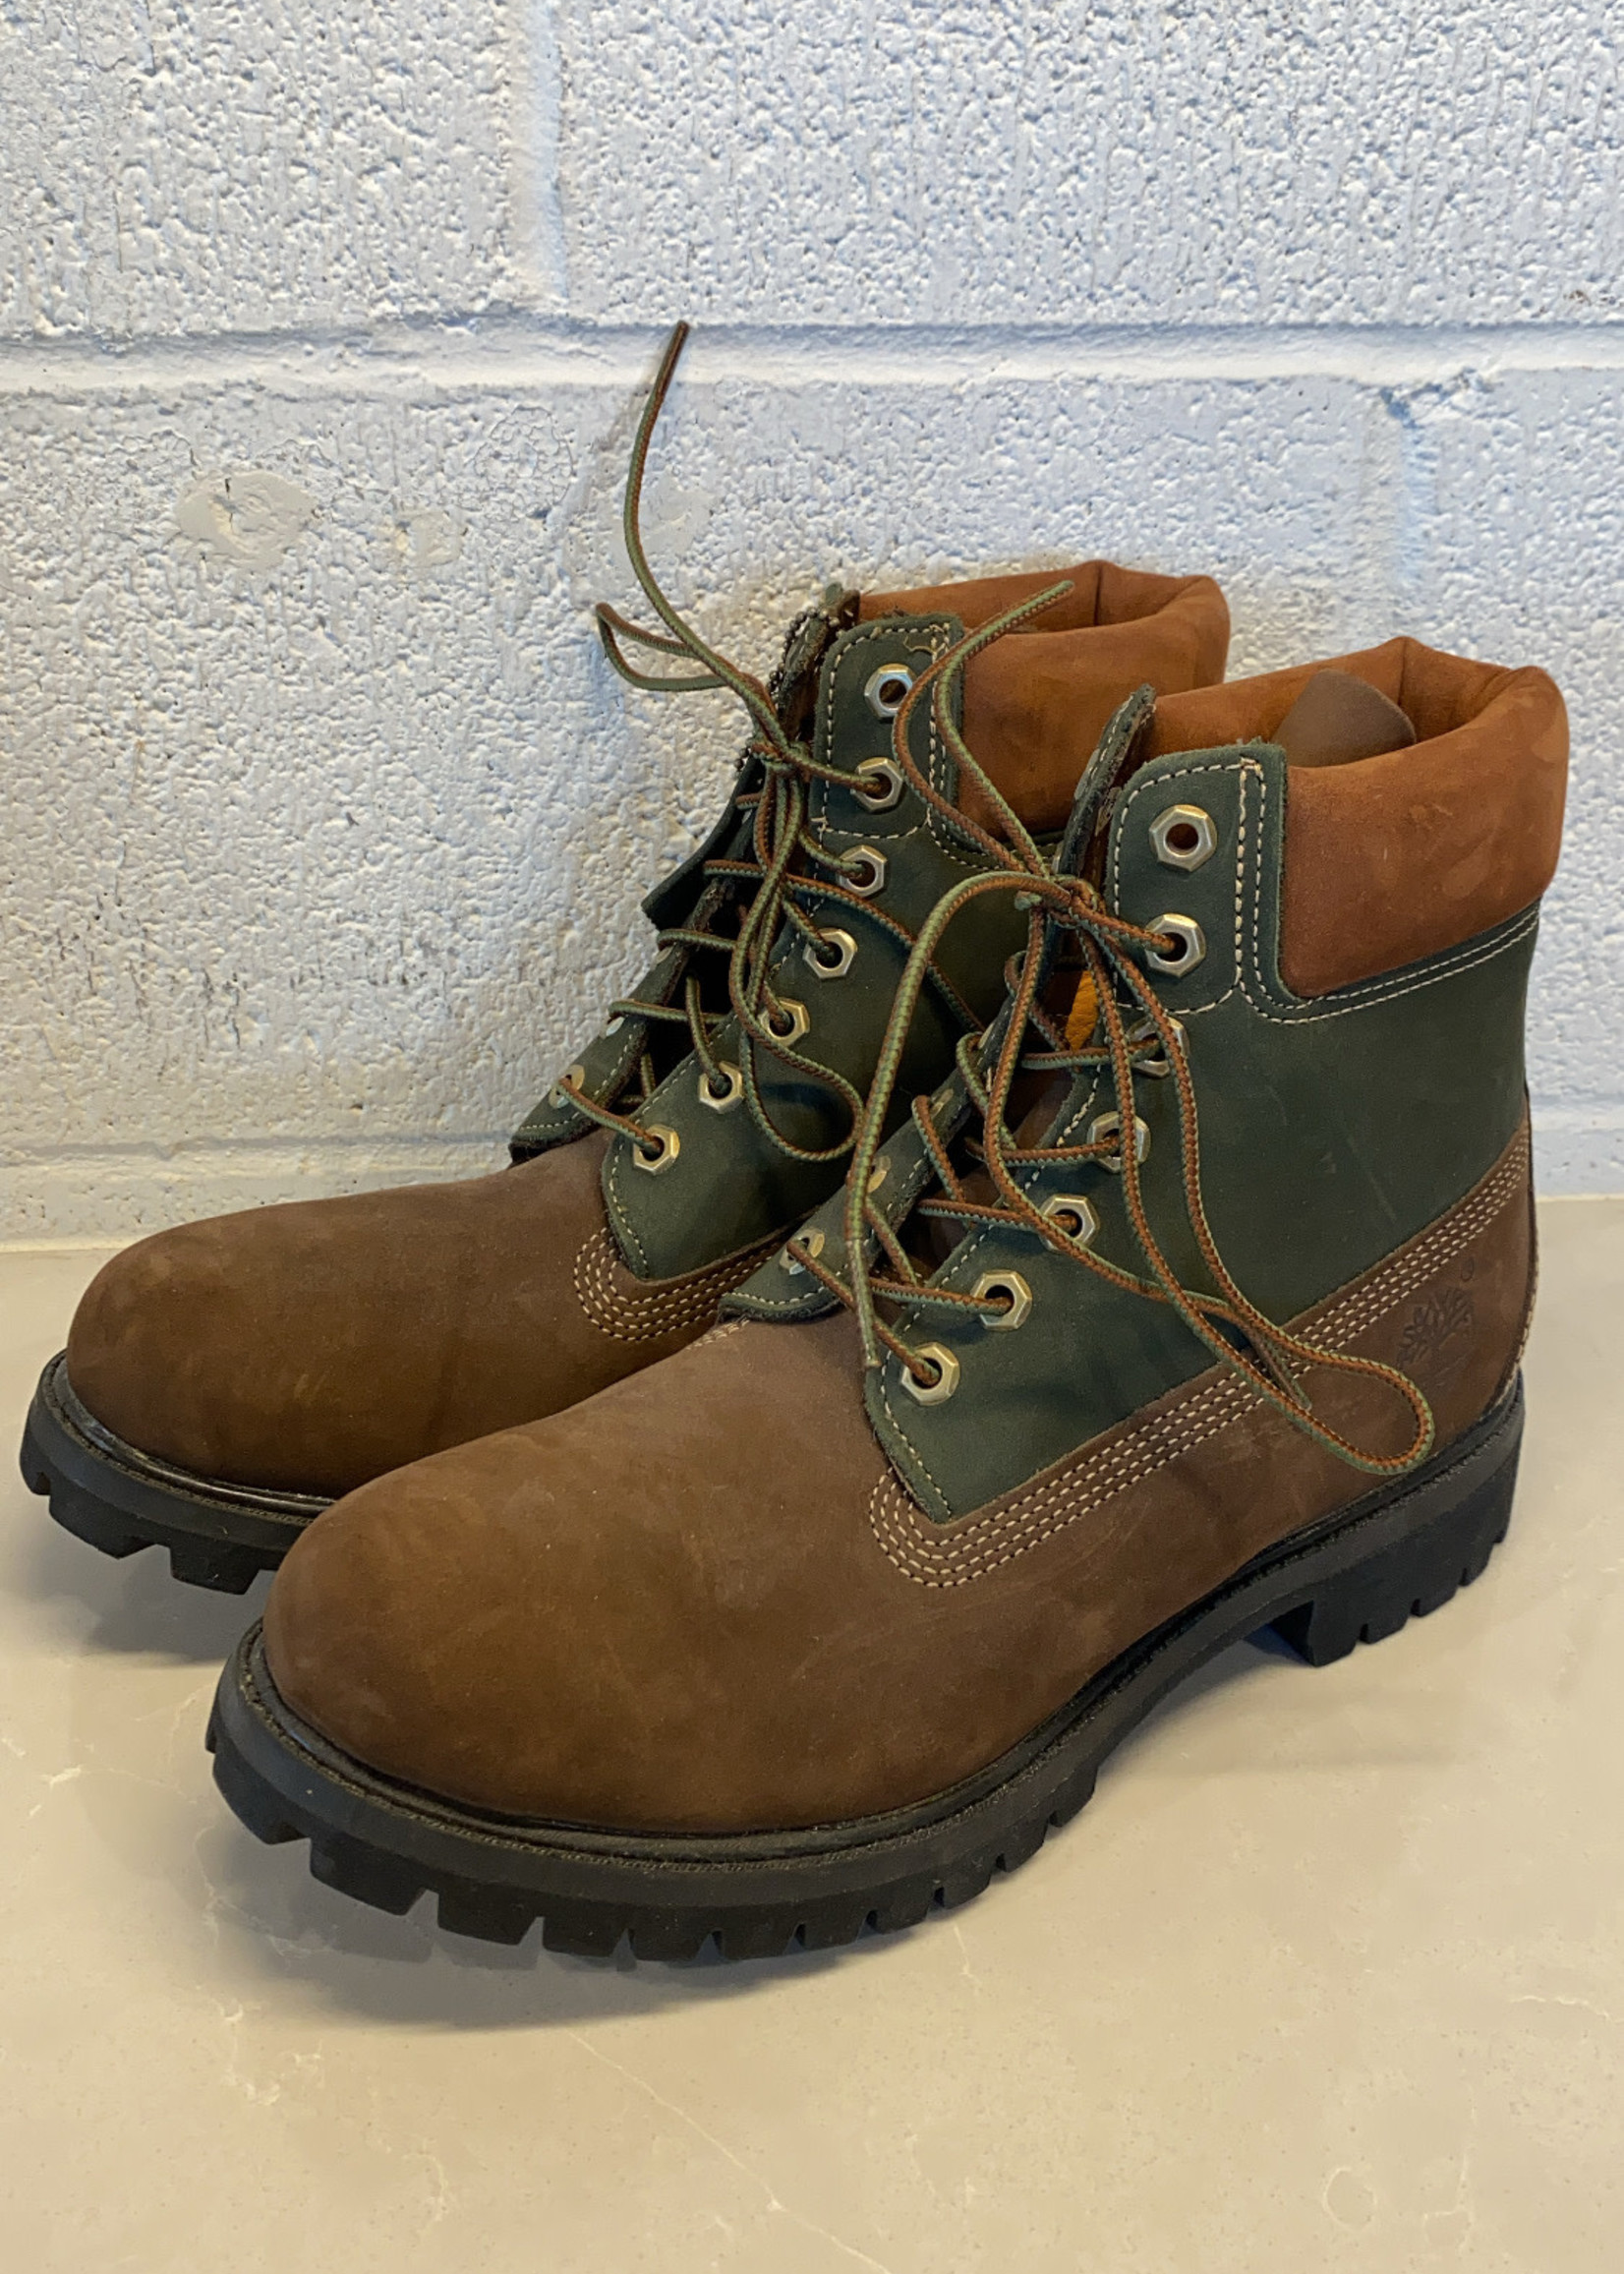 Timberland Brown/Green Suede Boots 8.5 (Retail: $200)